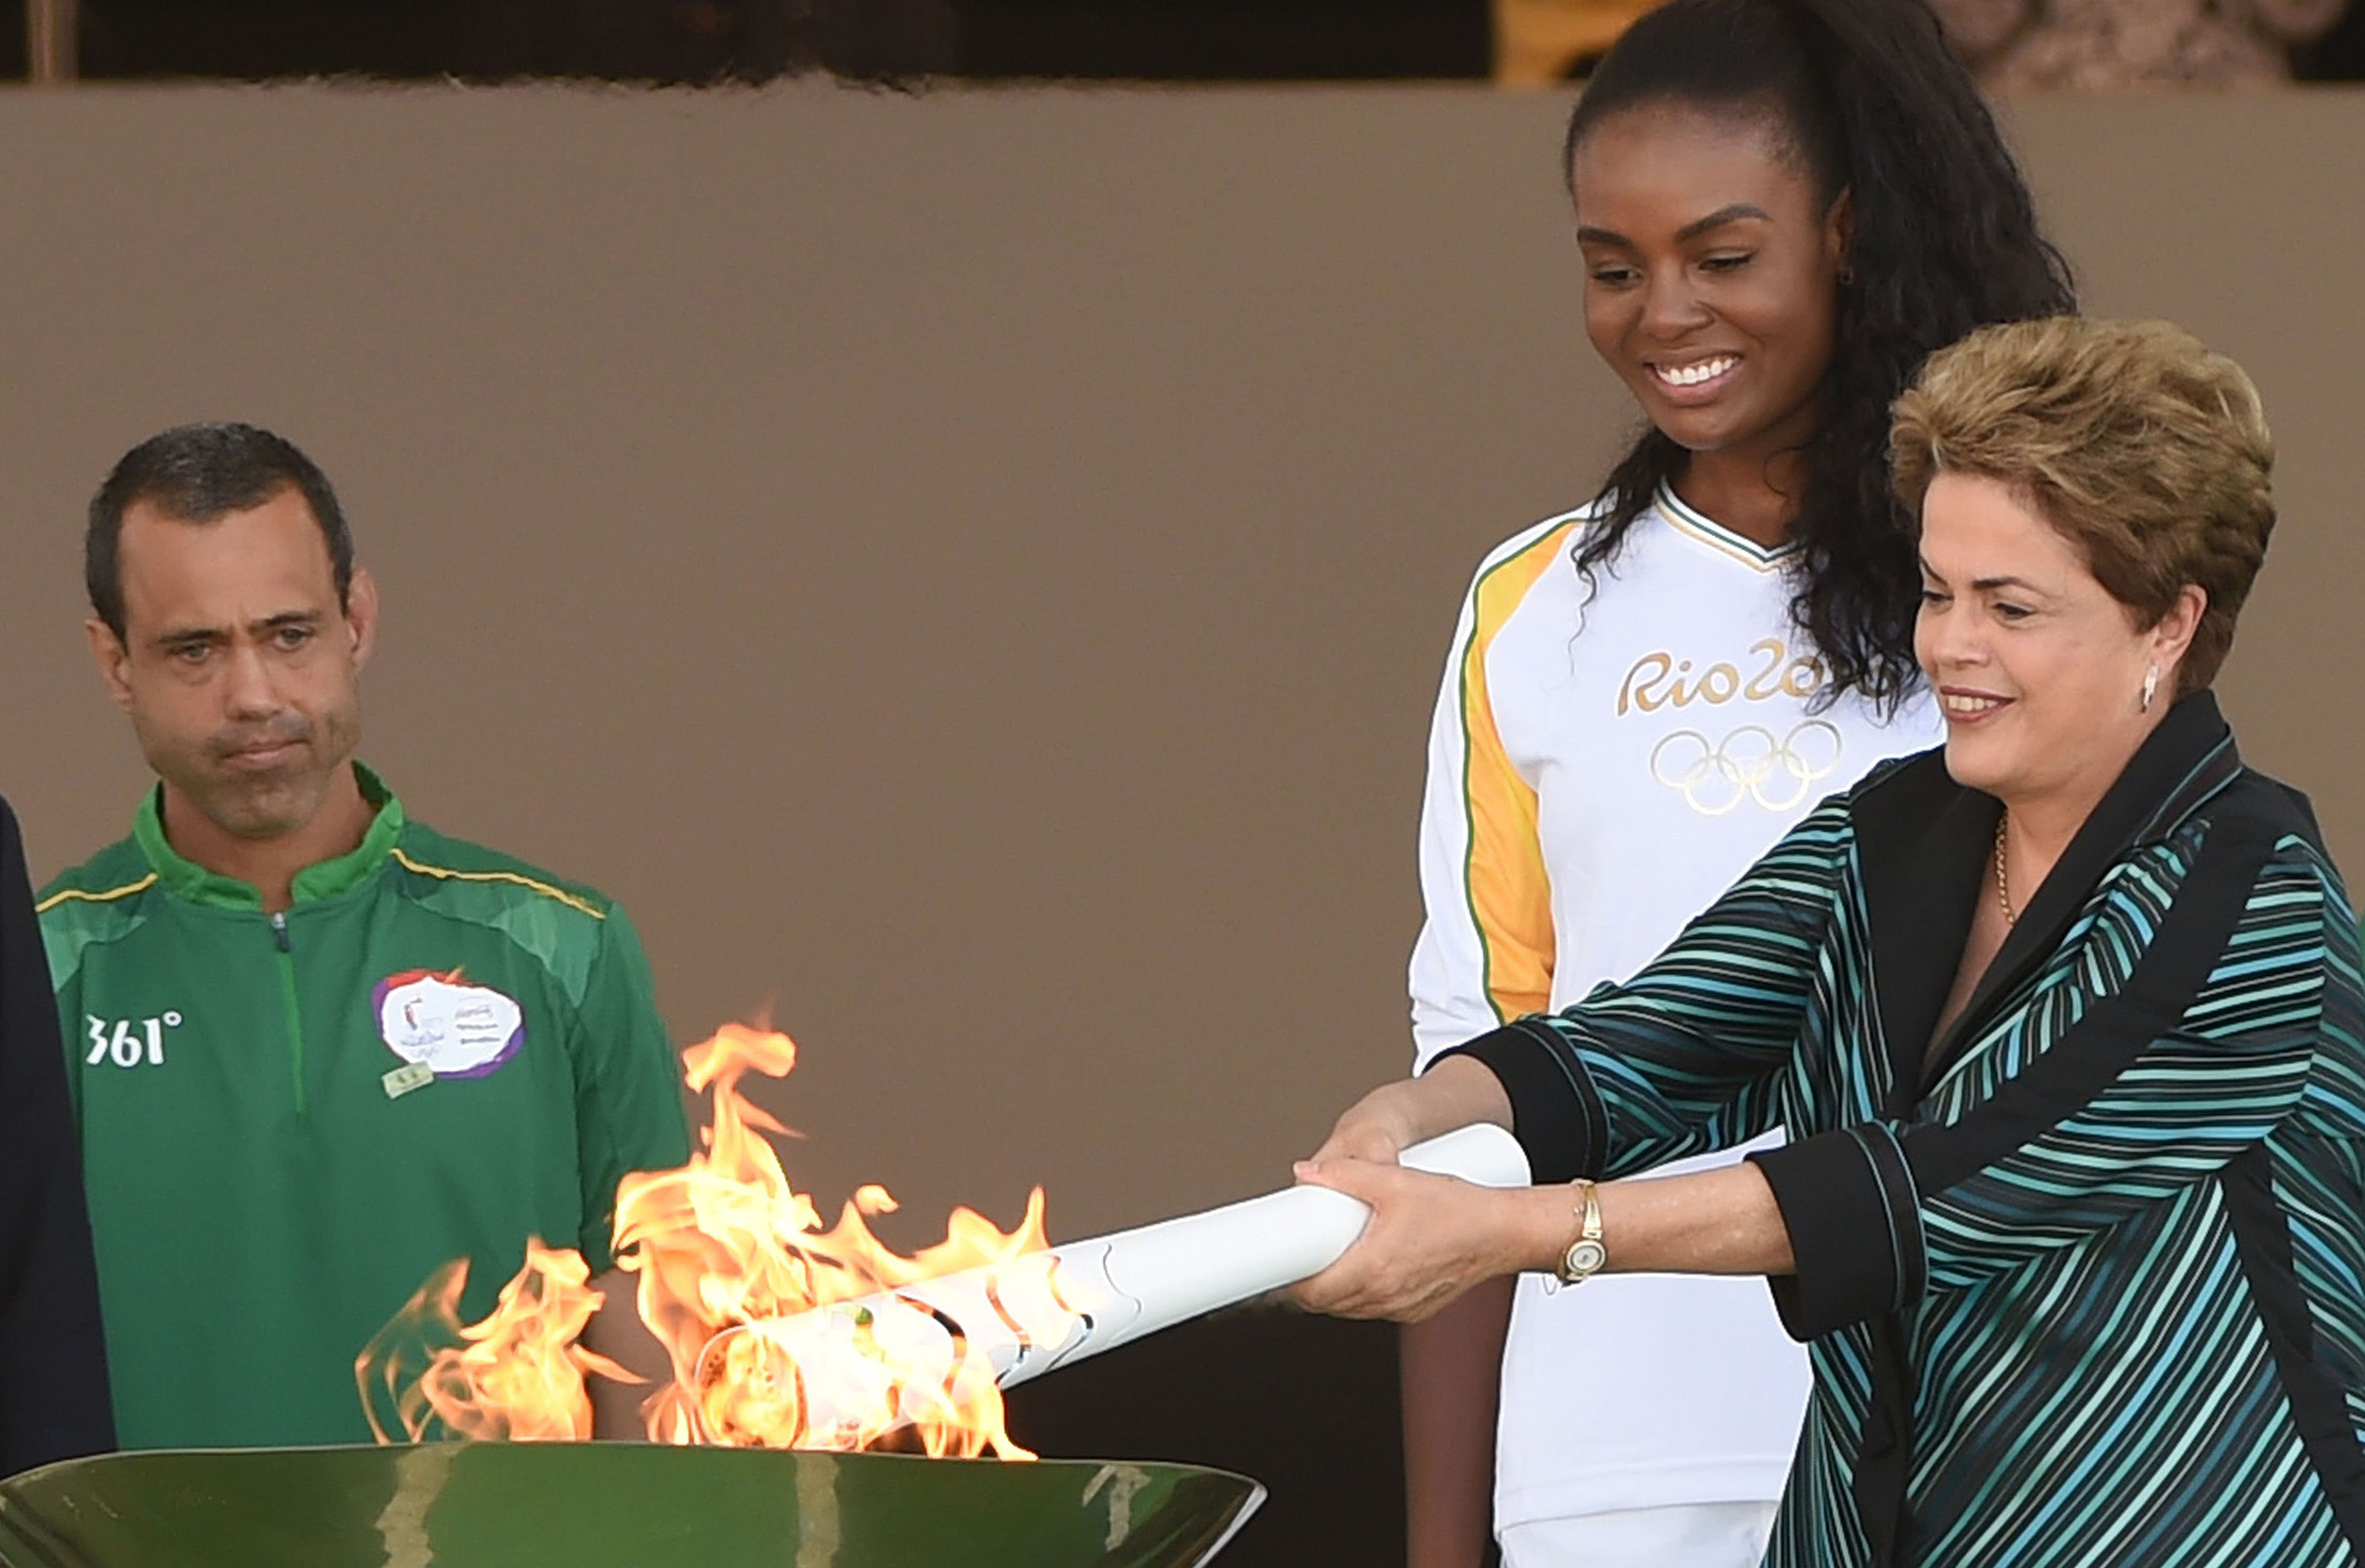 98d897c58520 Rio 2016  Olympic Flame Arrives in Brazil Ahead of Games